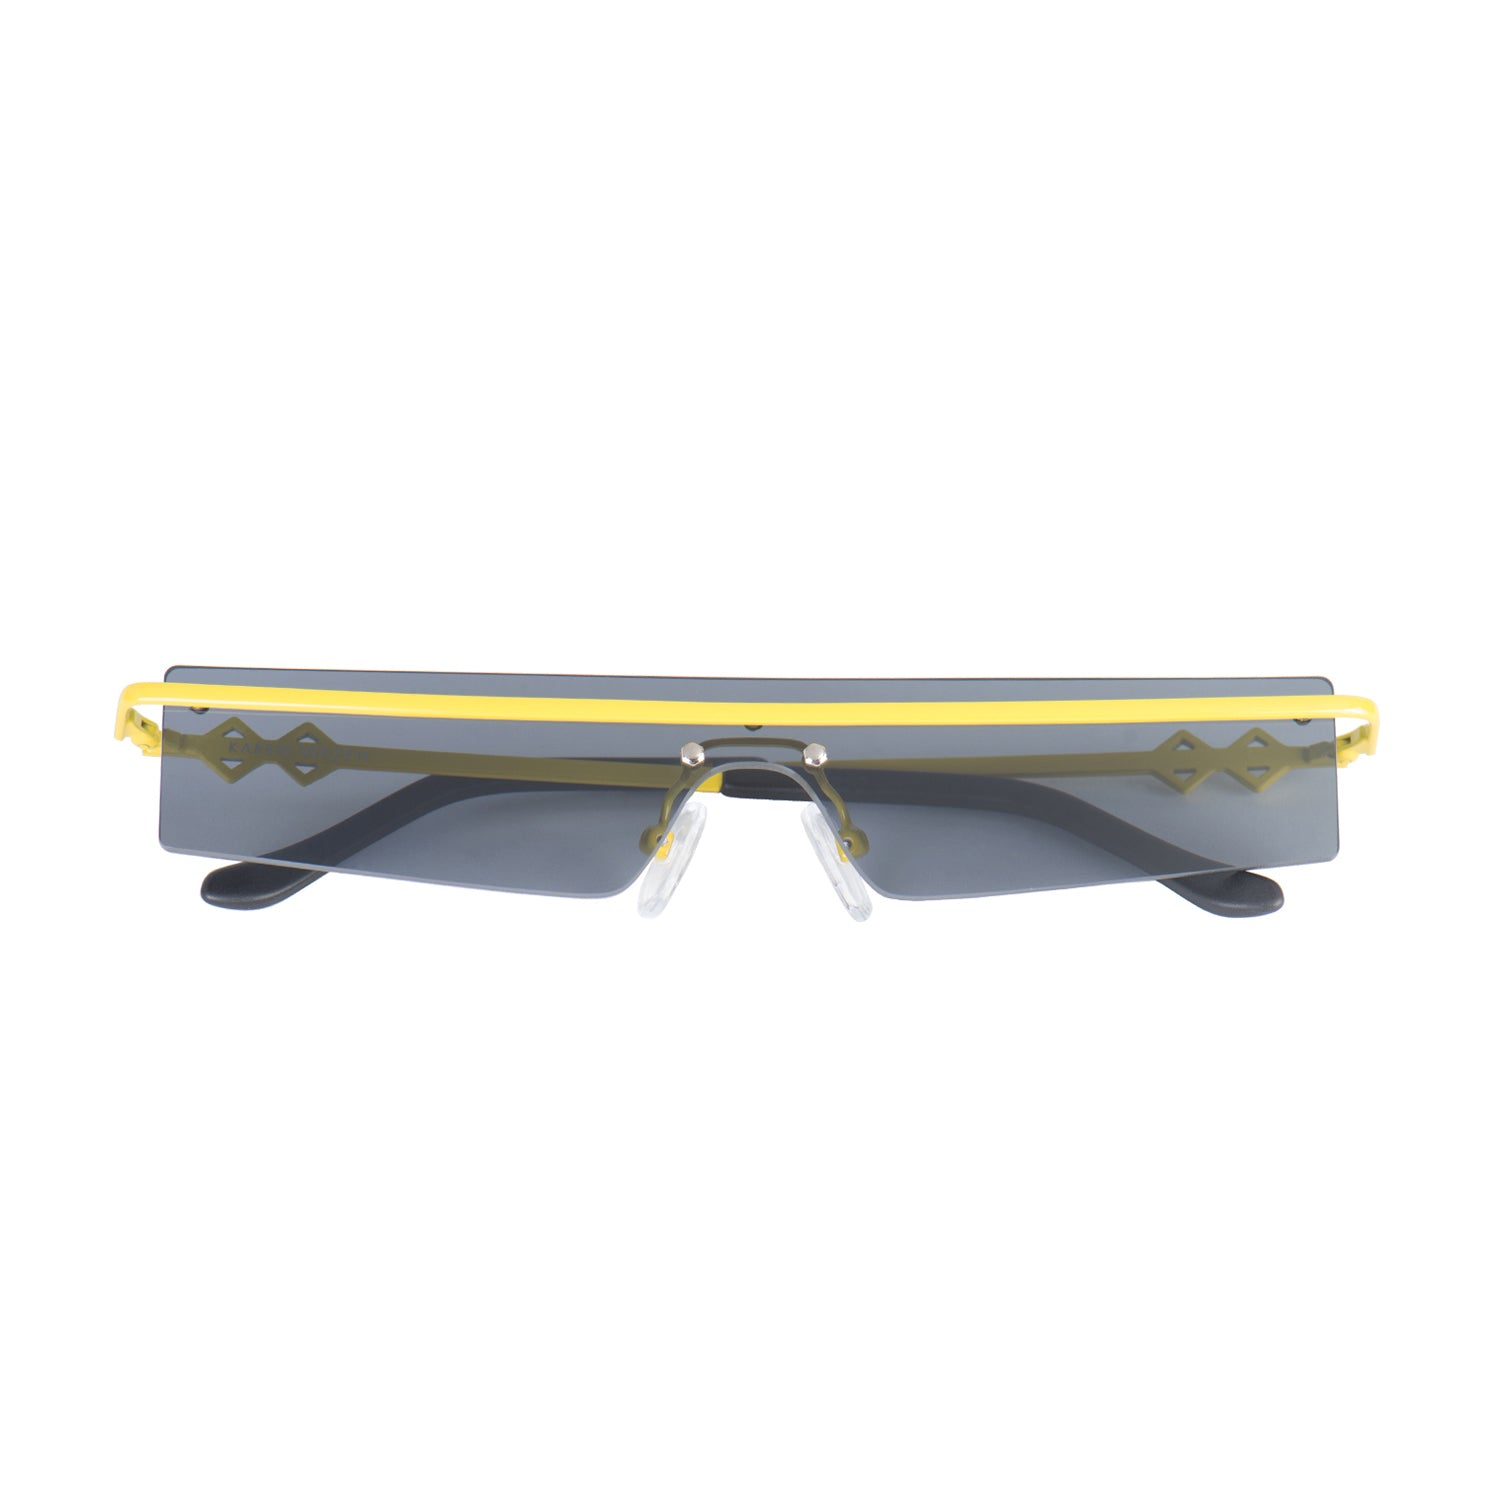 Frameless rectangle sunglasses with black lenses and yellow frames | Metal | 80's | Women's sunglasses | Karen Wazen Eyewear